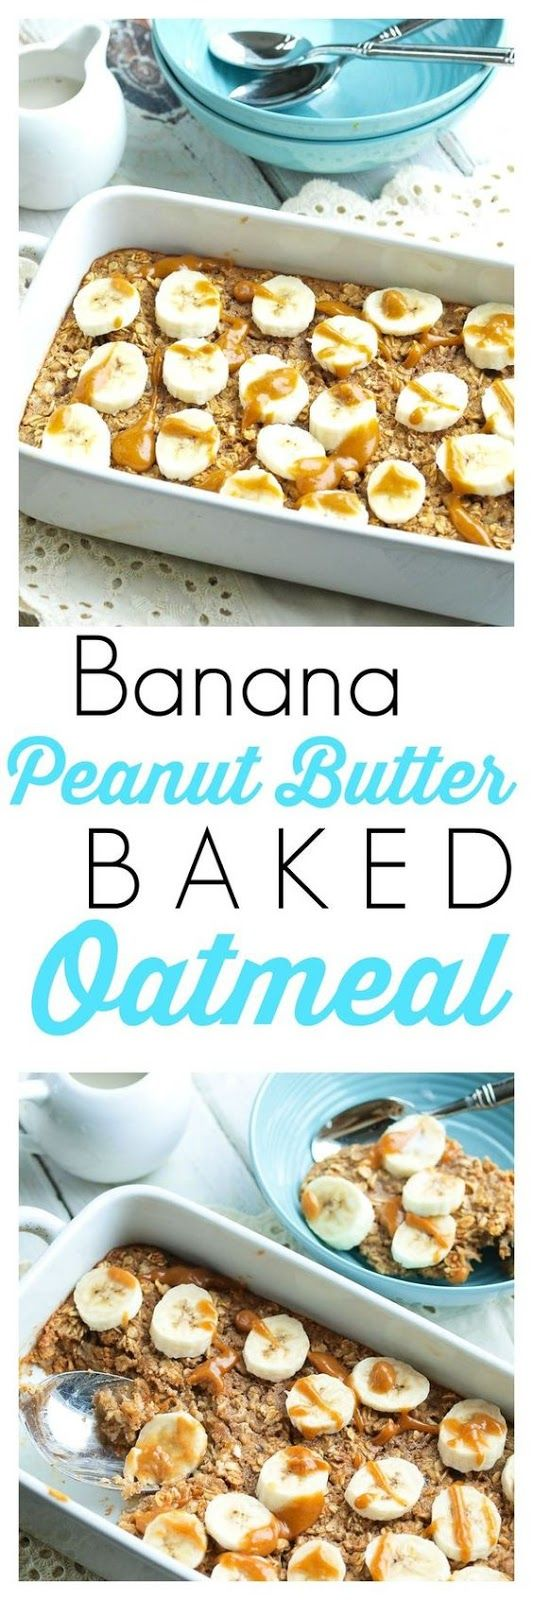 30+ Easy Oatmeal Recipes You Need To Try